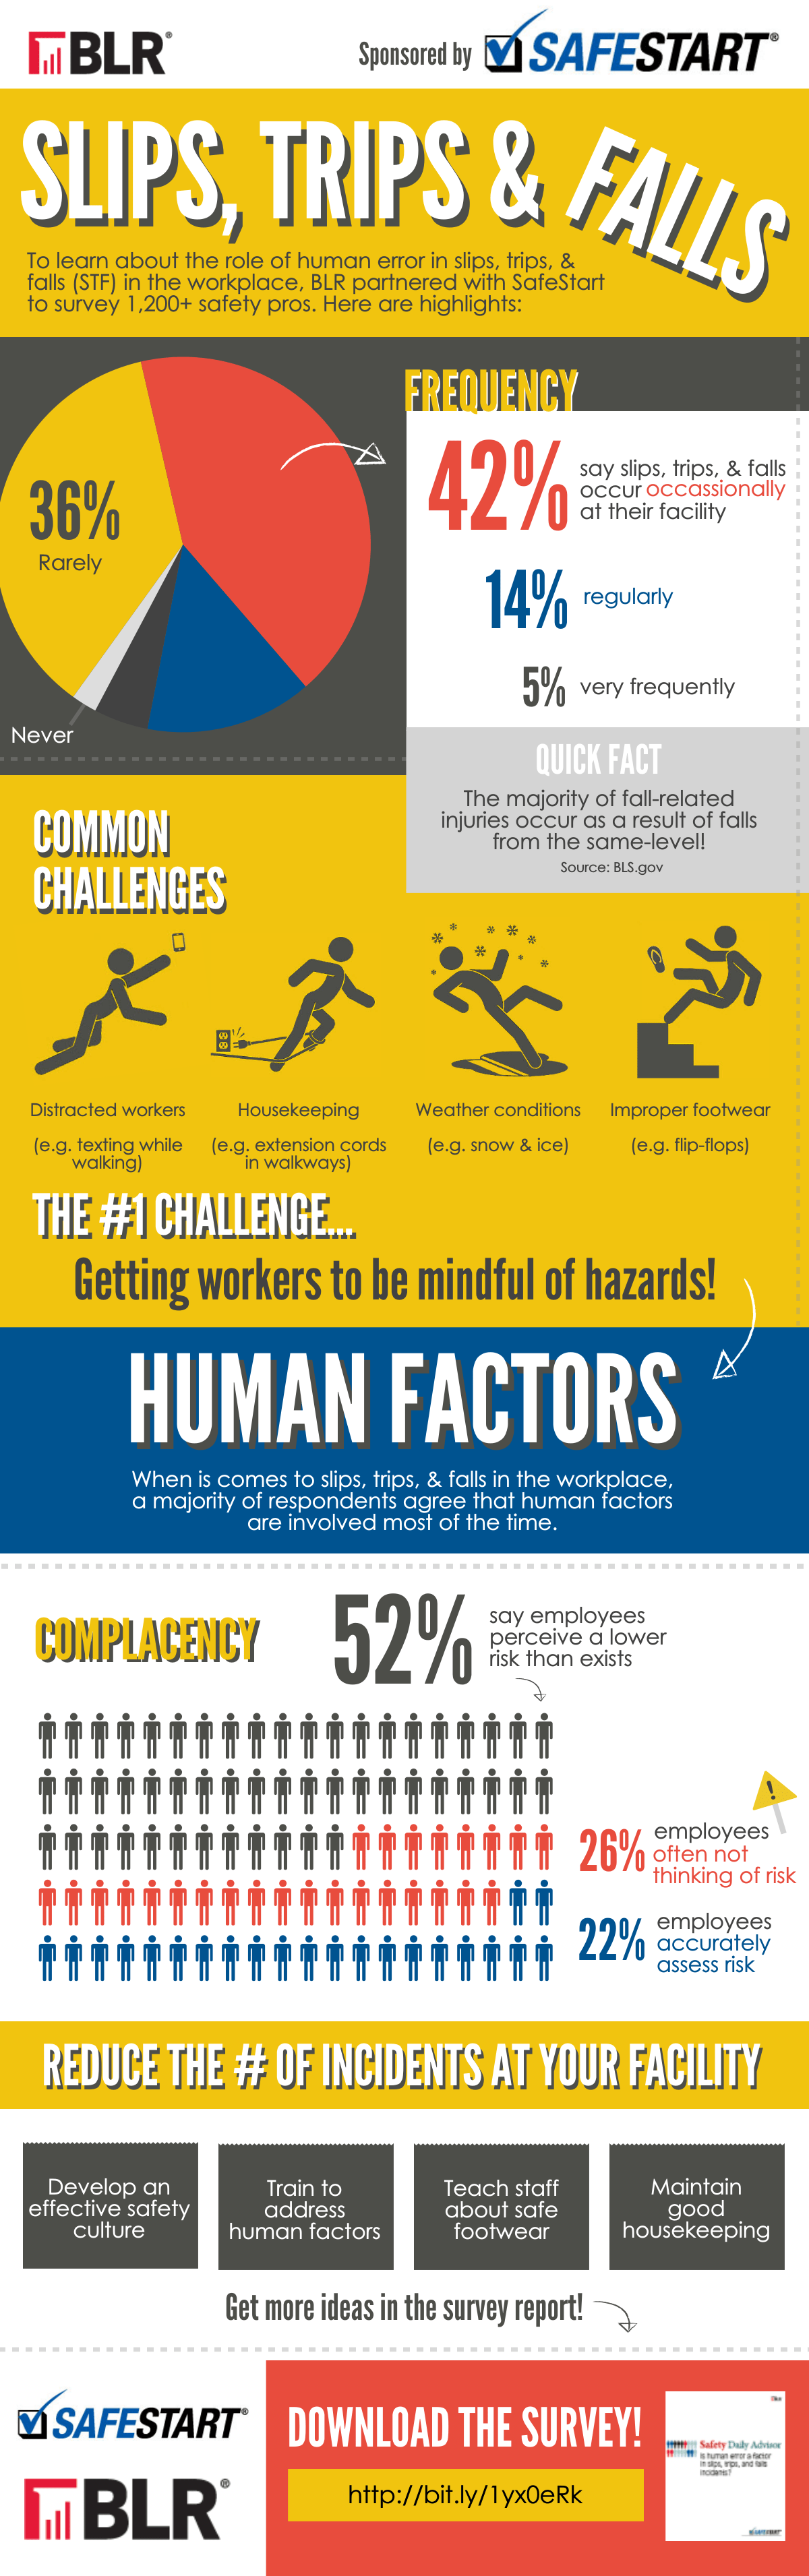 Safety and the Human Factor Infographic Occupational